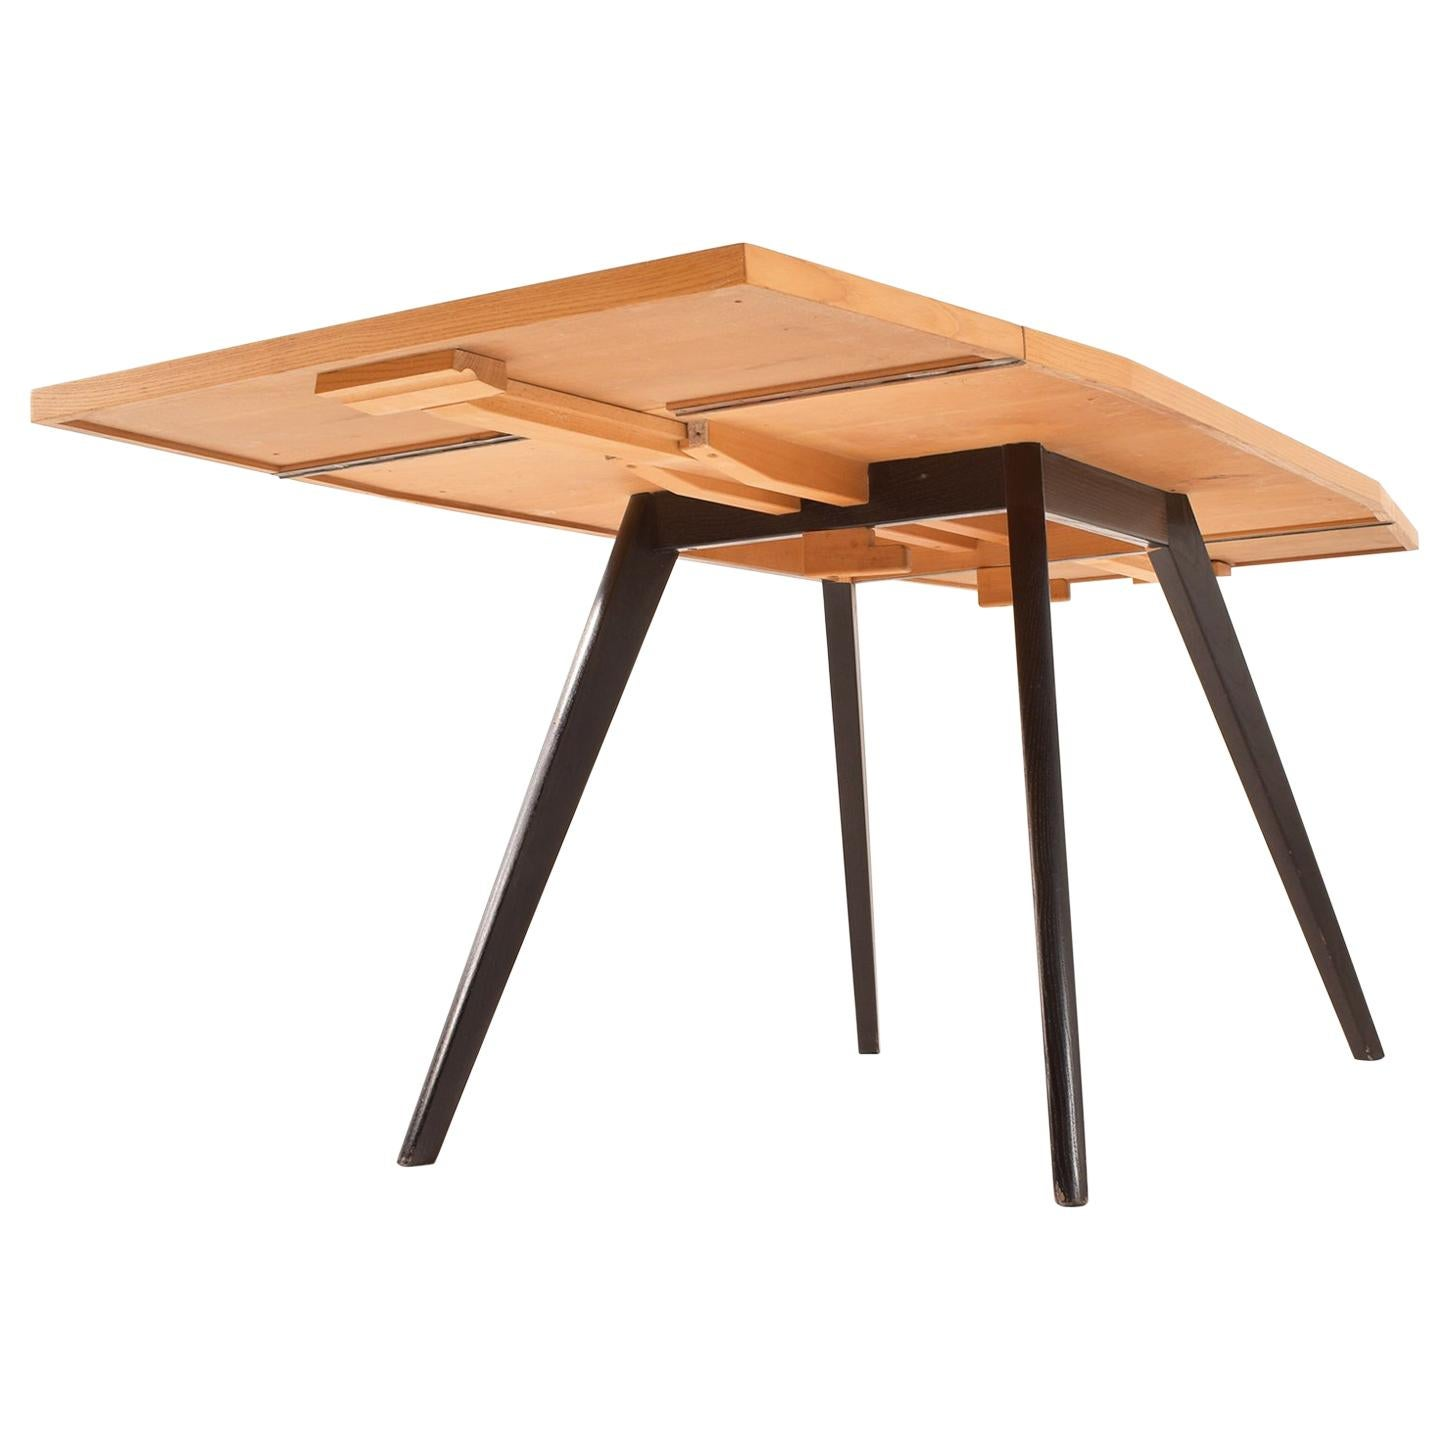 Superieur 1960 Foldable Dining Table, 1950, Switzerland